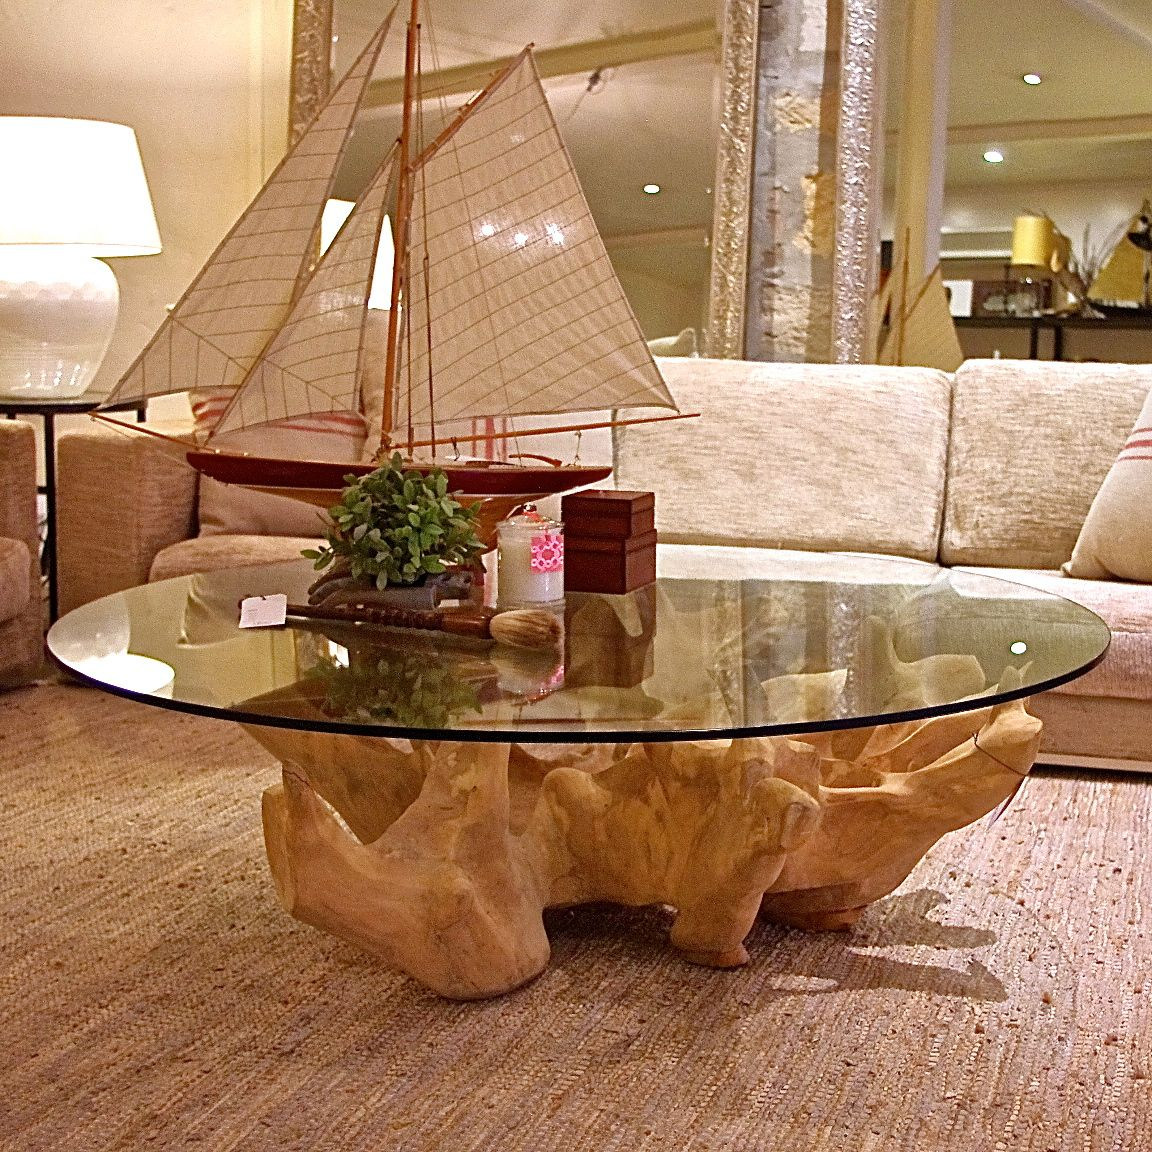 Incroyable Glass Coffee Table With Tree Base   Modern Classic Furniture Check More At  Http://www.nikkitsfun.com/glass Coffee Table With Tree Base/